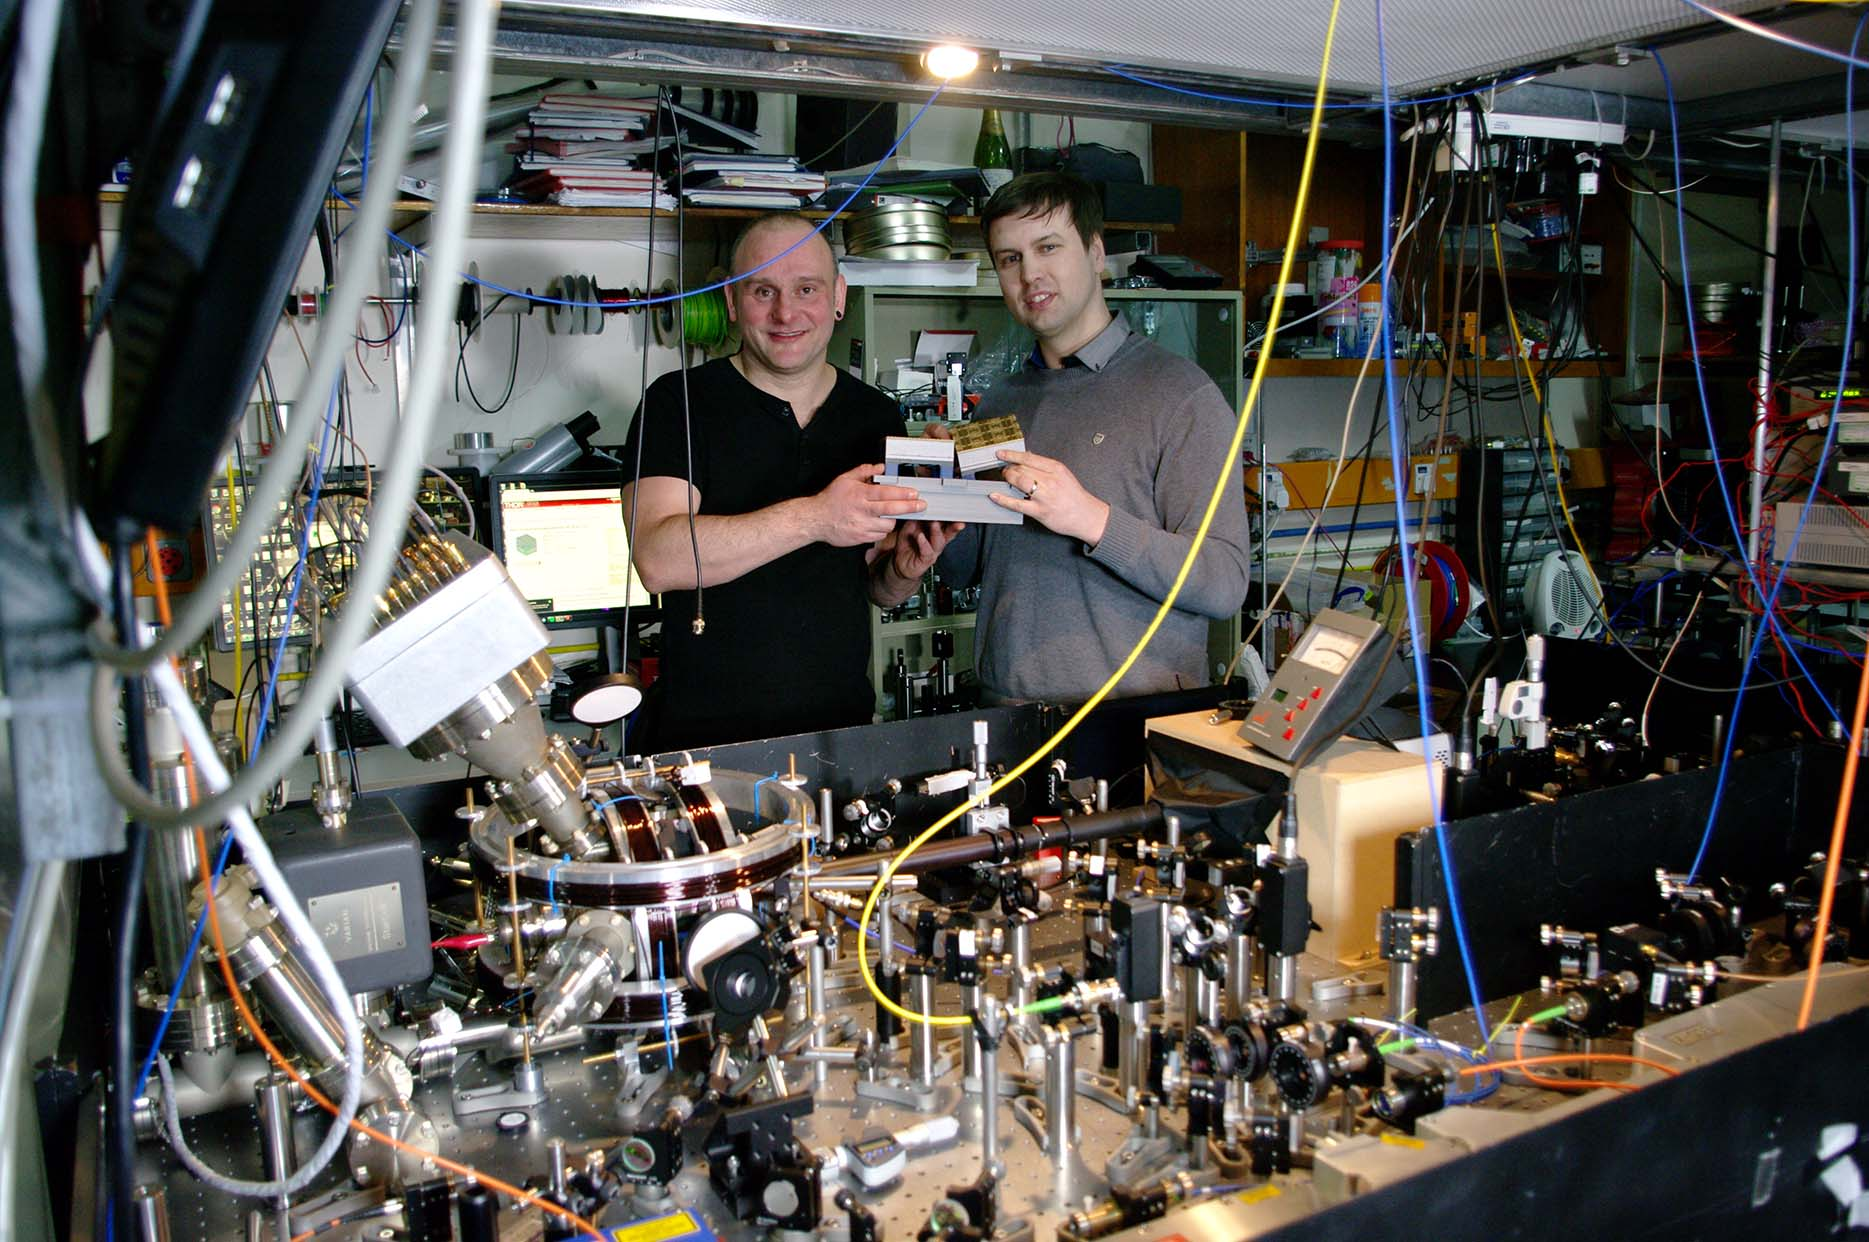 Prof. Hensinger (left) and Dr Lekitsch (right) with a quantum computer blueprint model behind a quantum computer prototype at the University of Sussex.